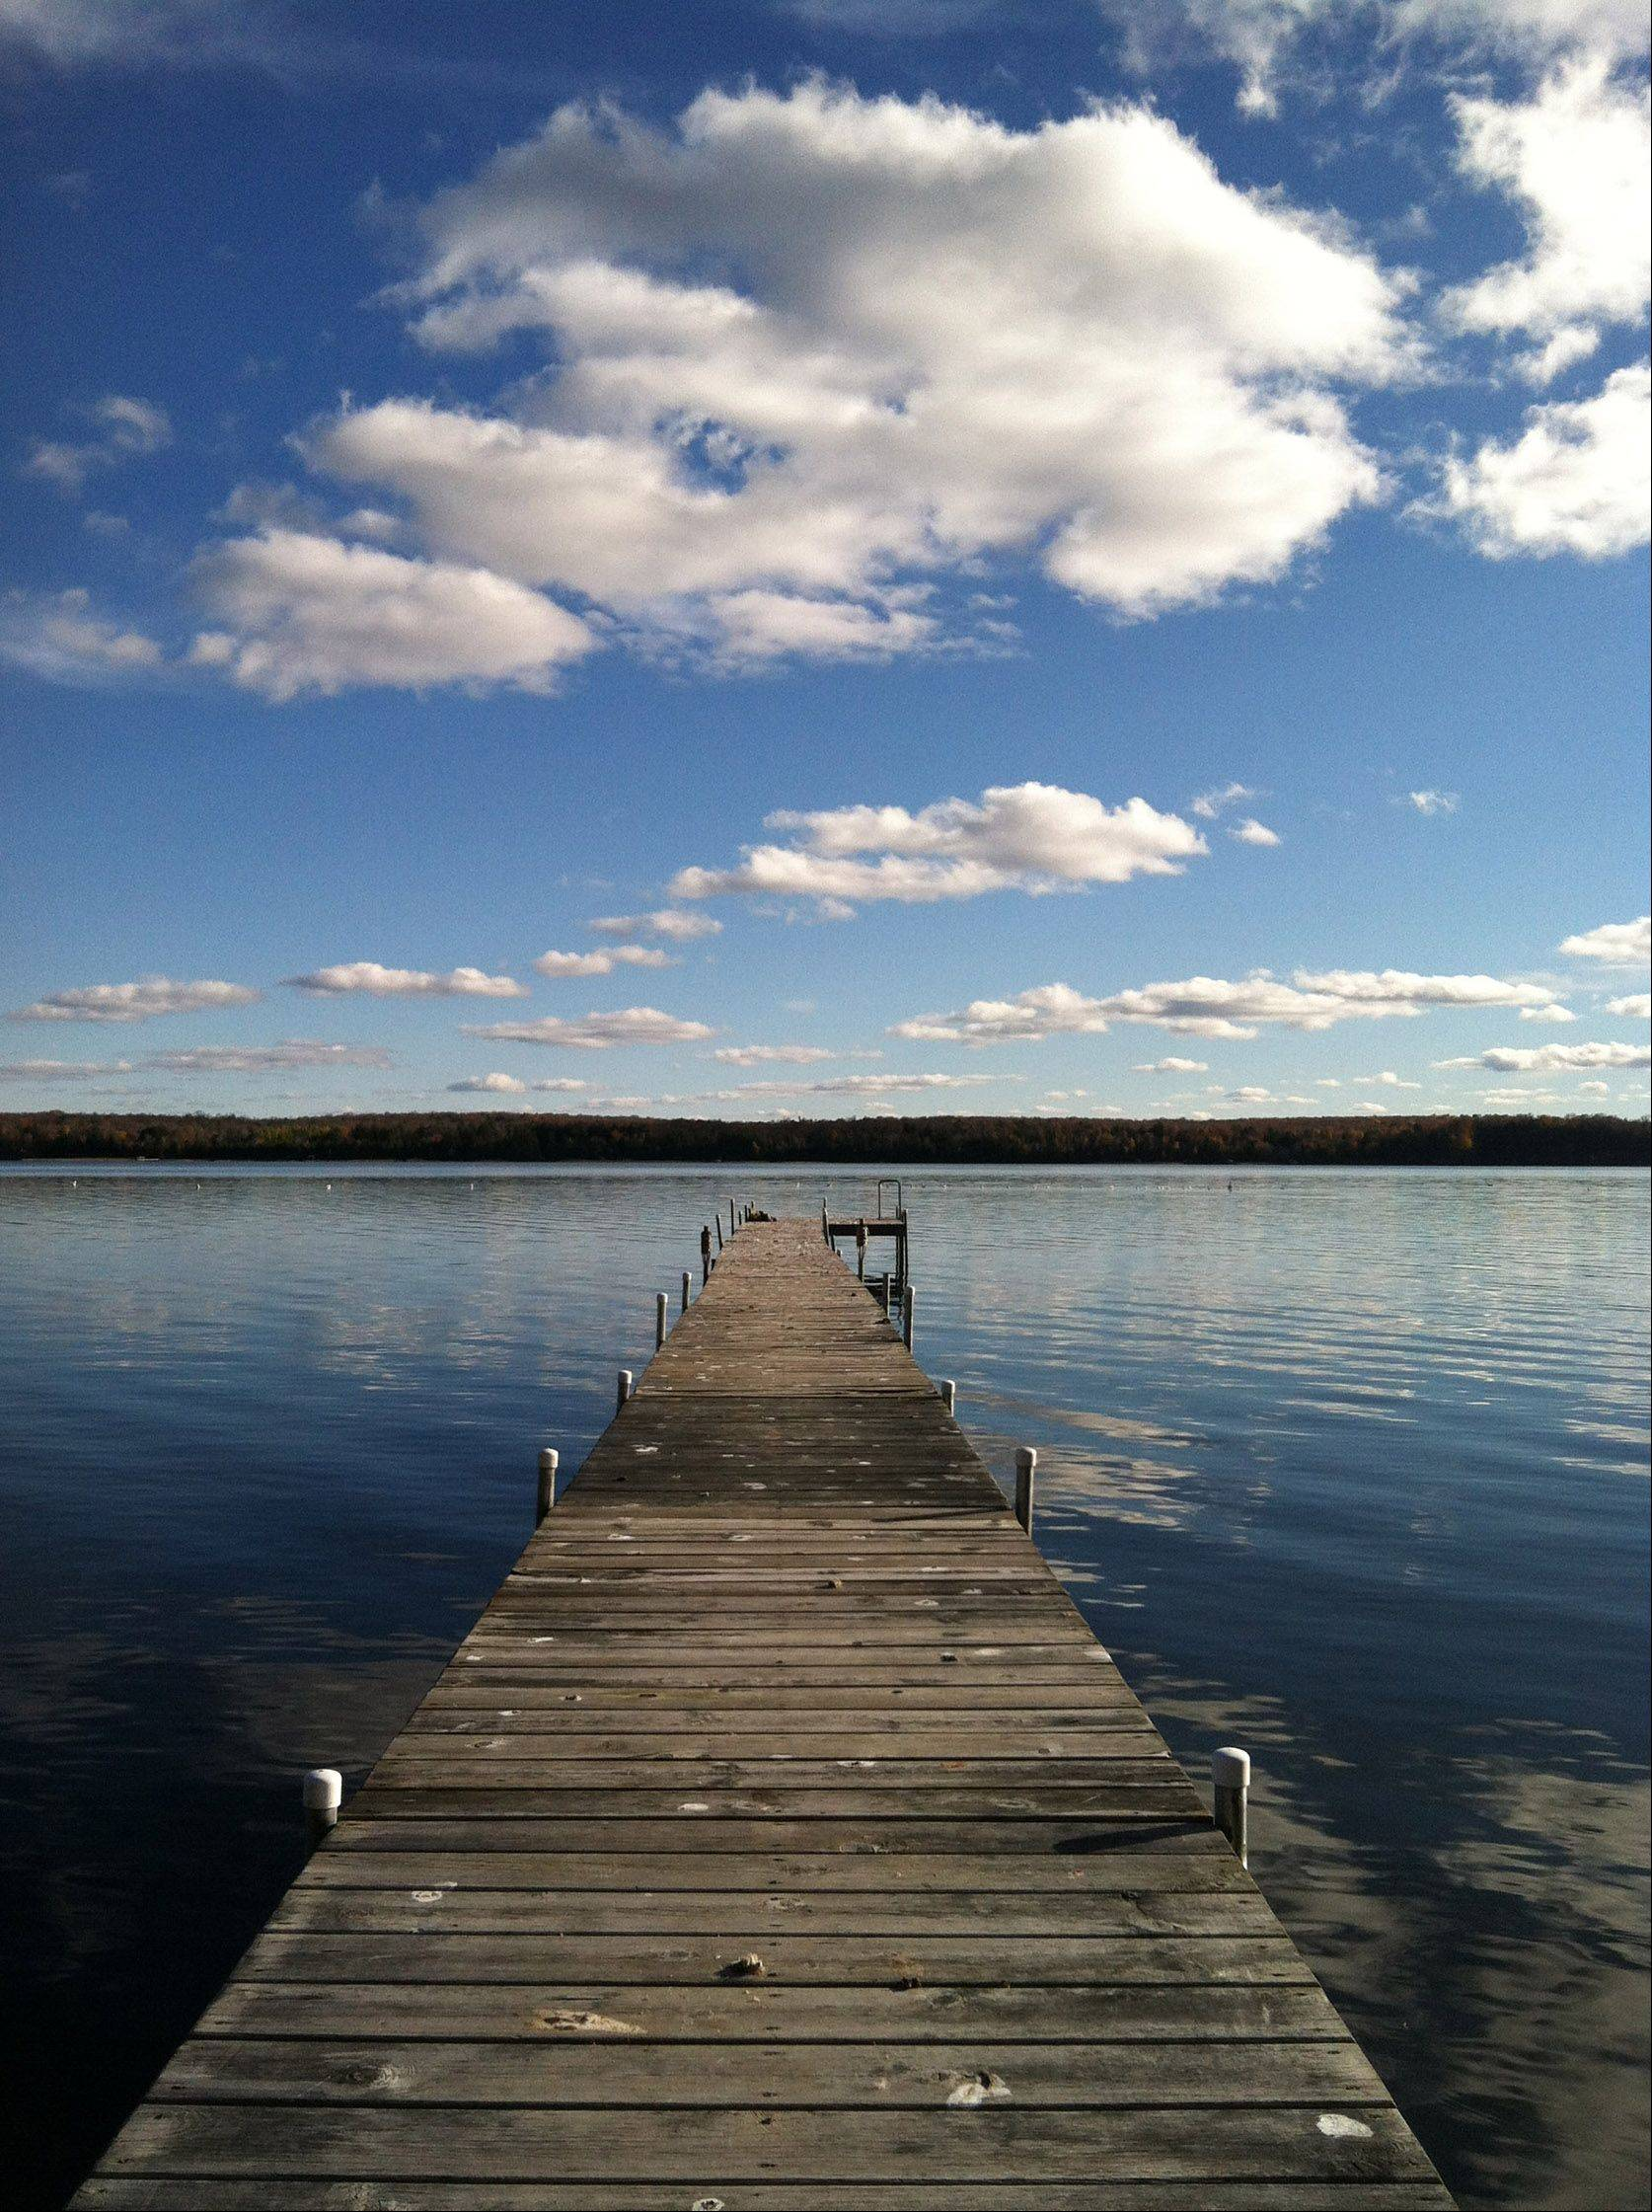 A neighbor's pier extends into a still lake with a blue sky and puffy white clouds on October 13th on Big Sand Lake in Phelps, WI